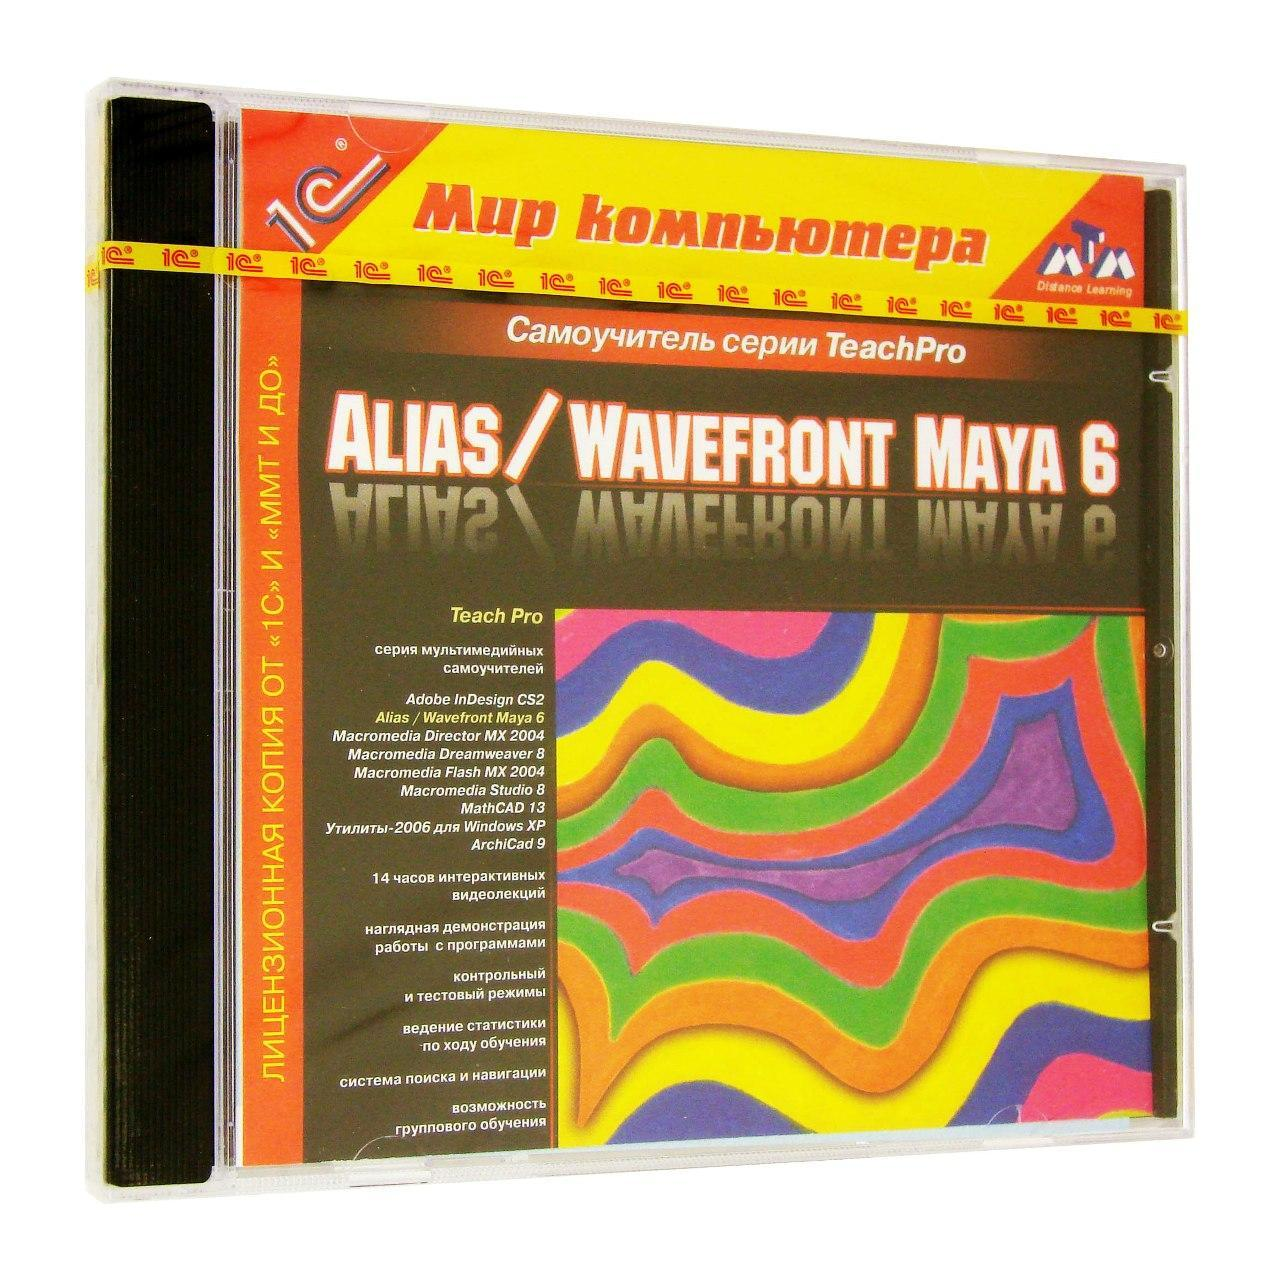 "Компьютерный компакт-диск Alias / Wavefront Maya 6 TeachPro (PC), фирма ""1C"", 1CD"